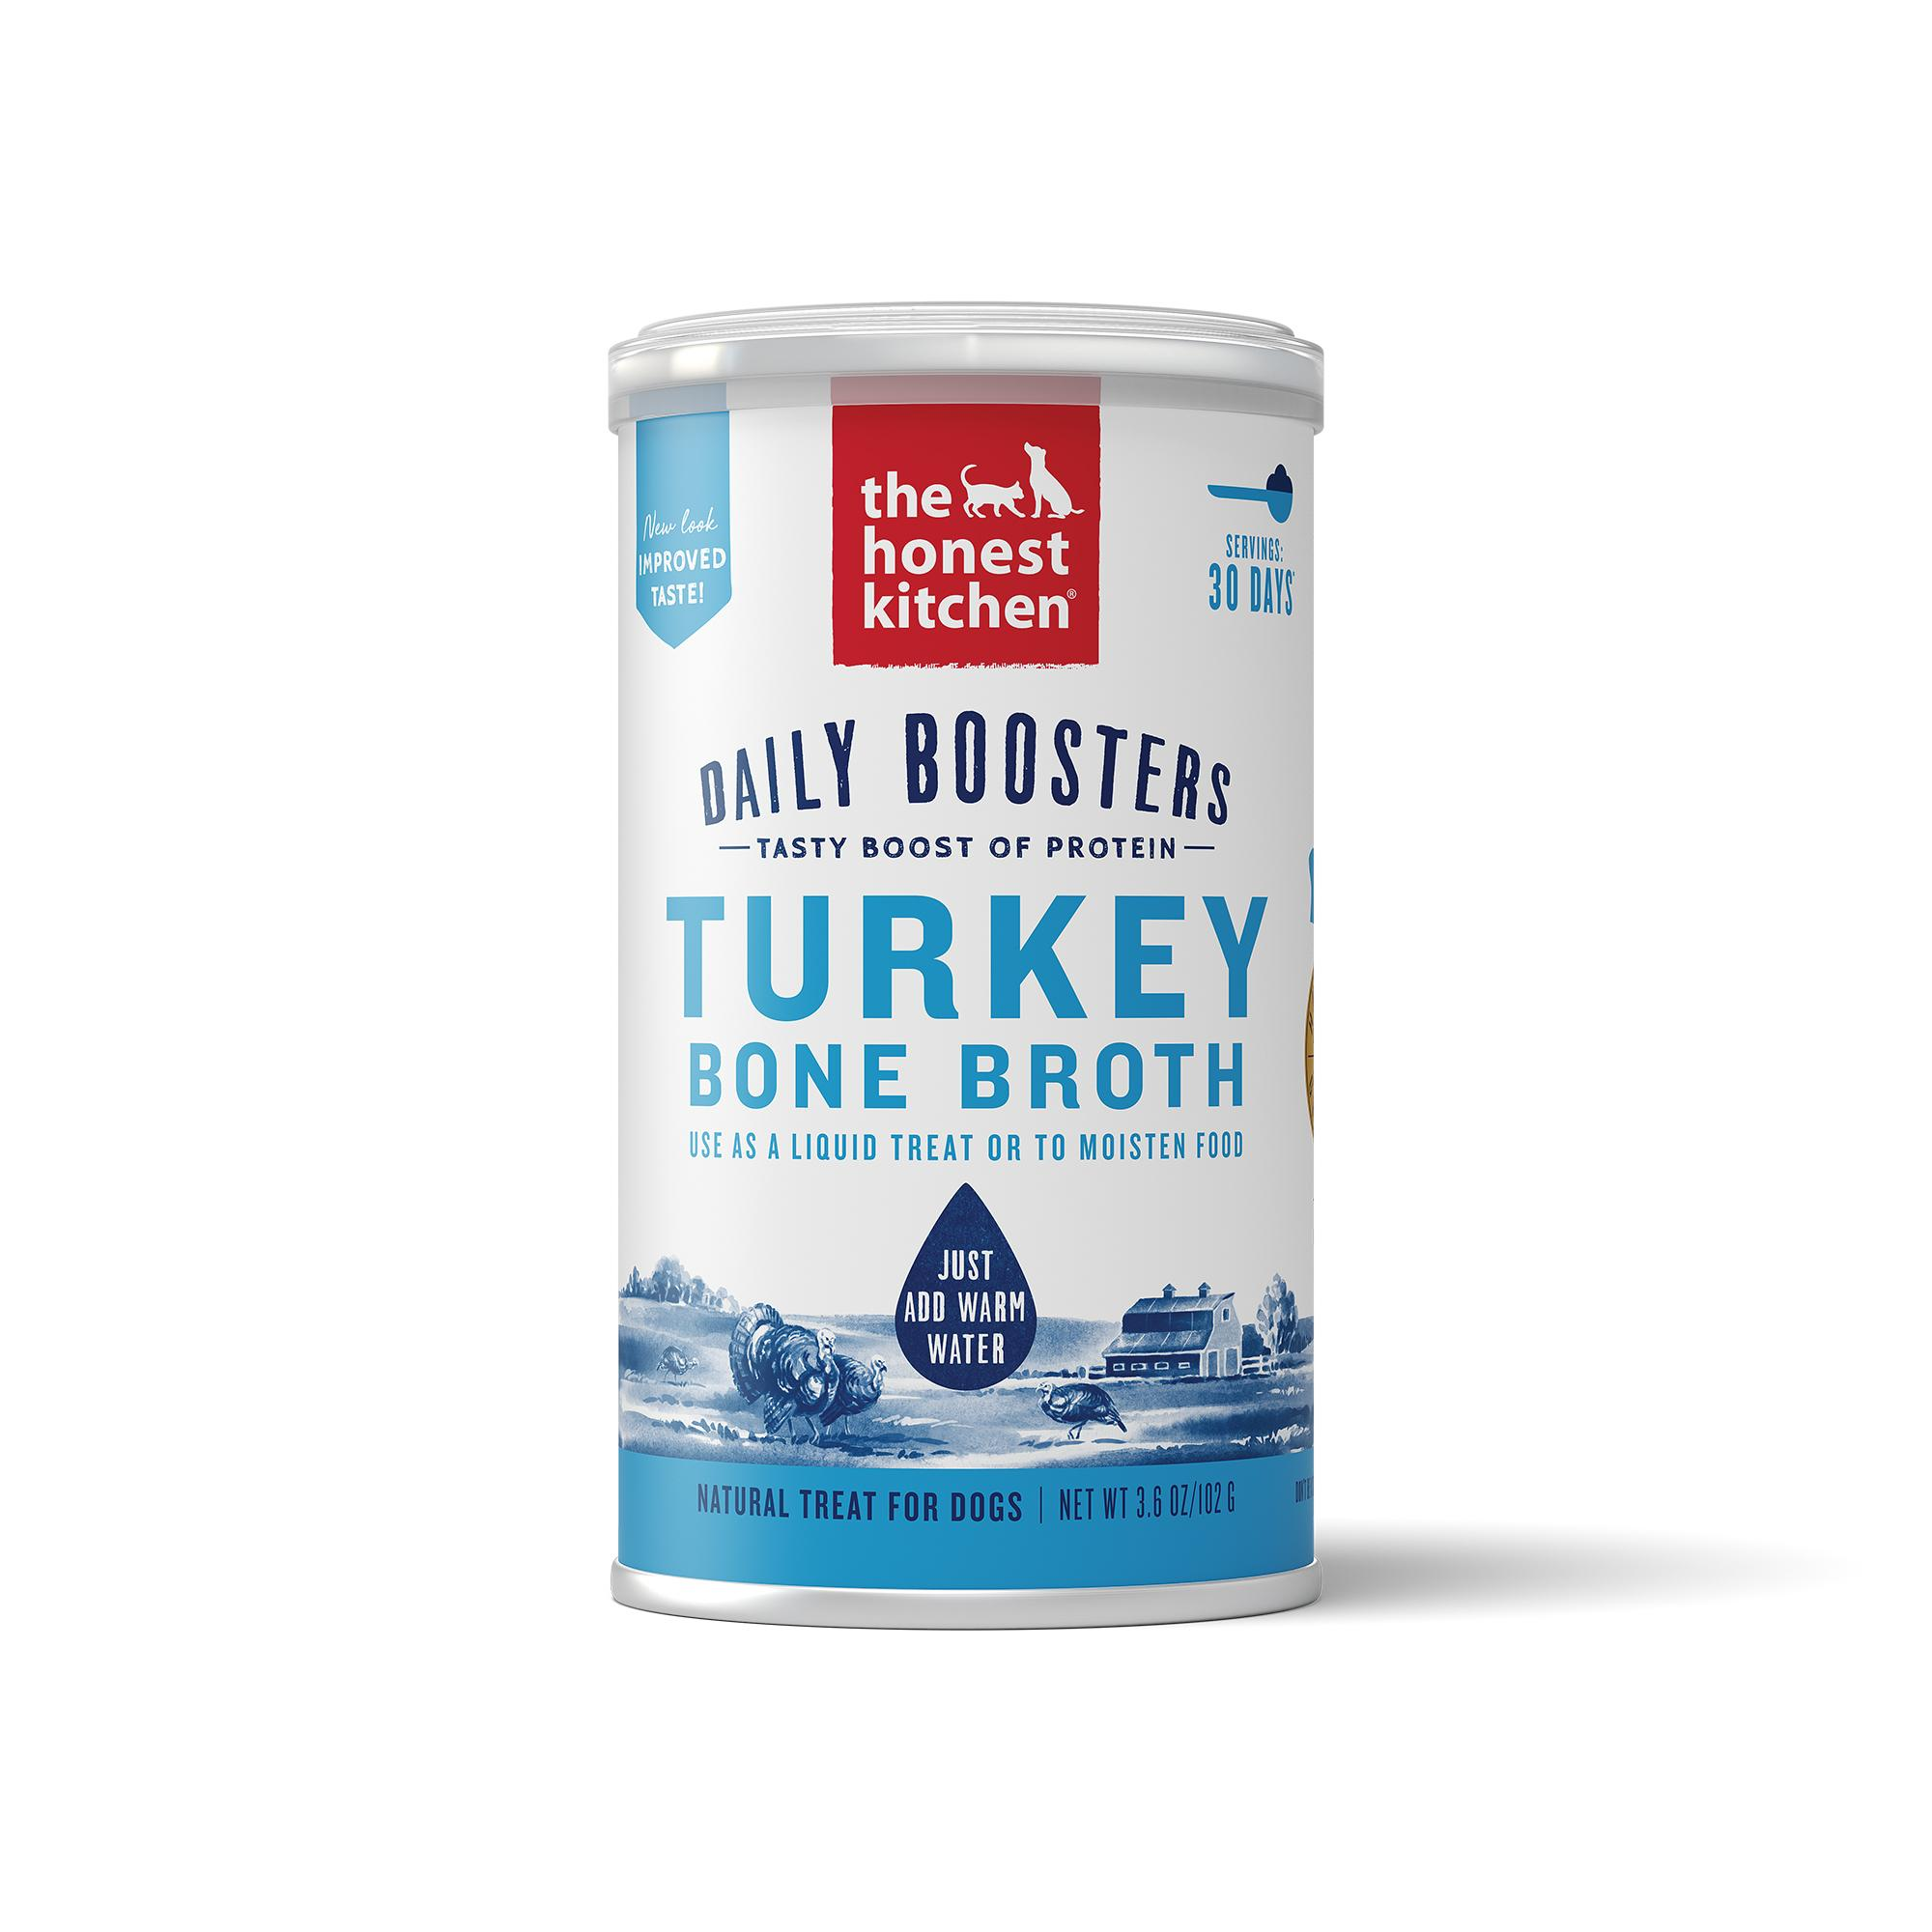 The Honest Kitchen Daily Boosters Instant Turkey Bone Broth with Turmeric for Dogs, 3.6-oz